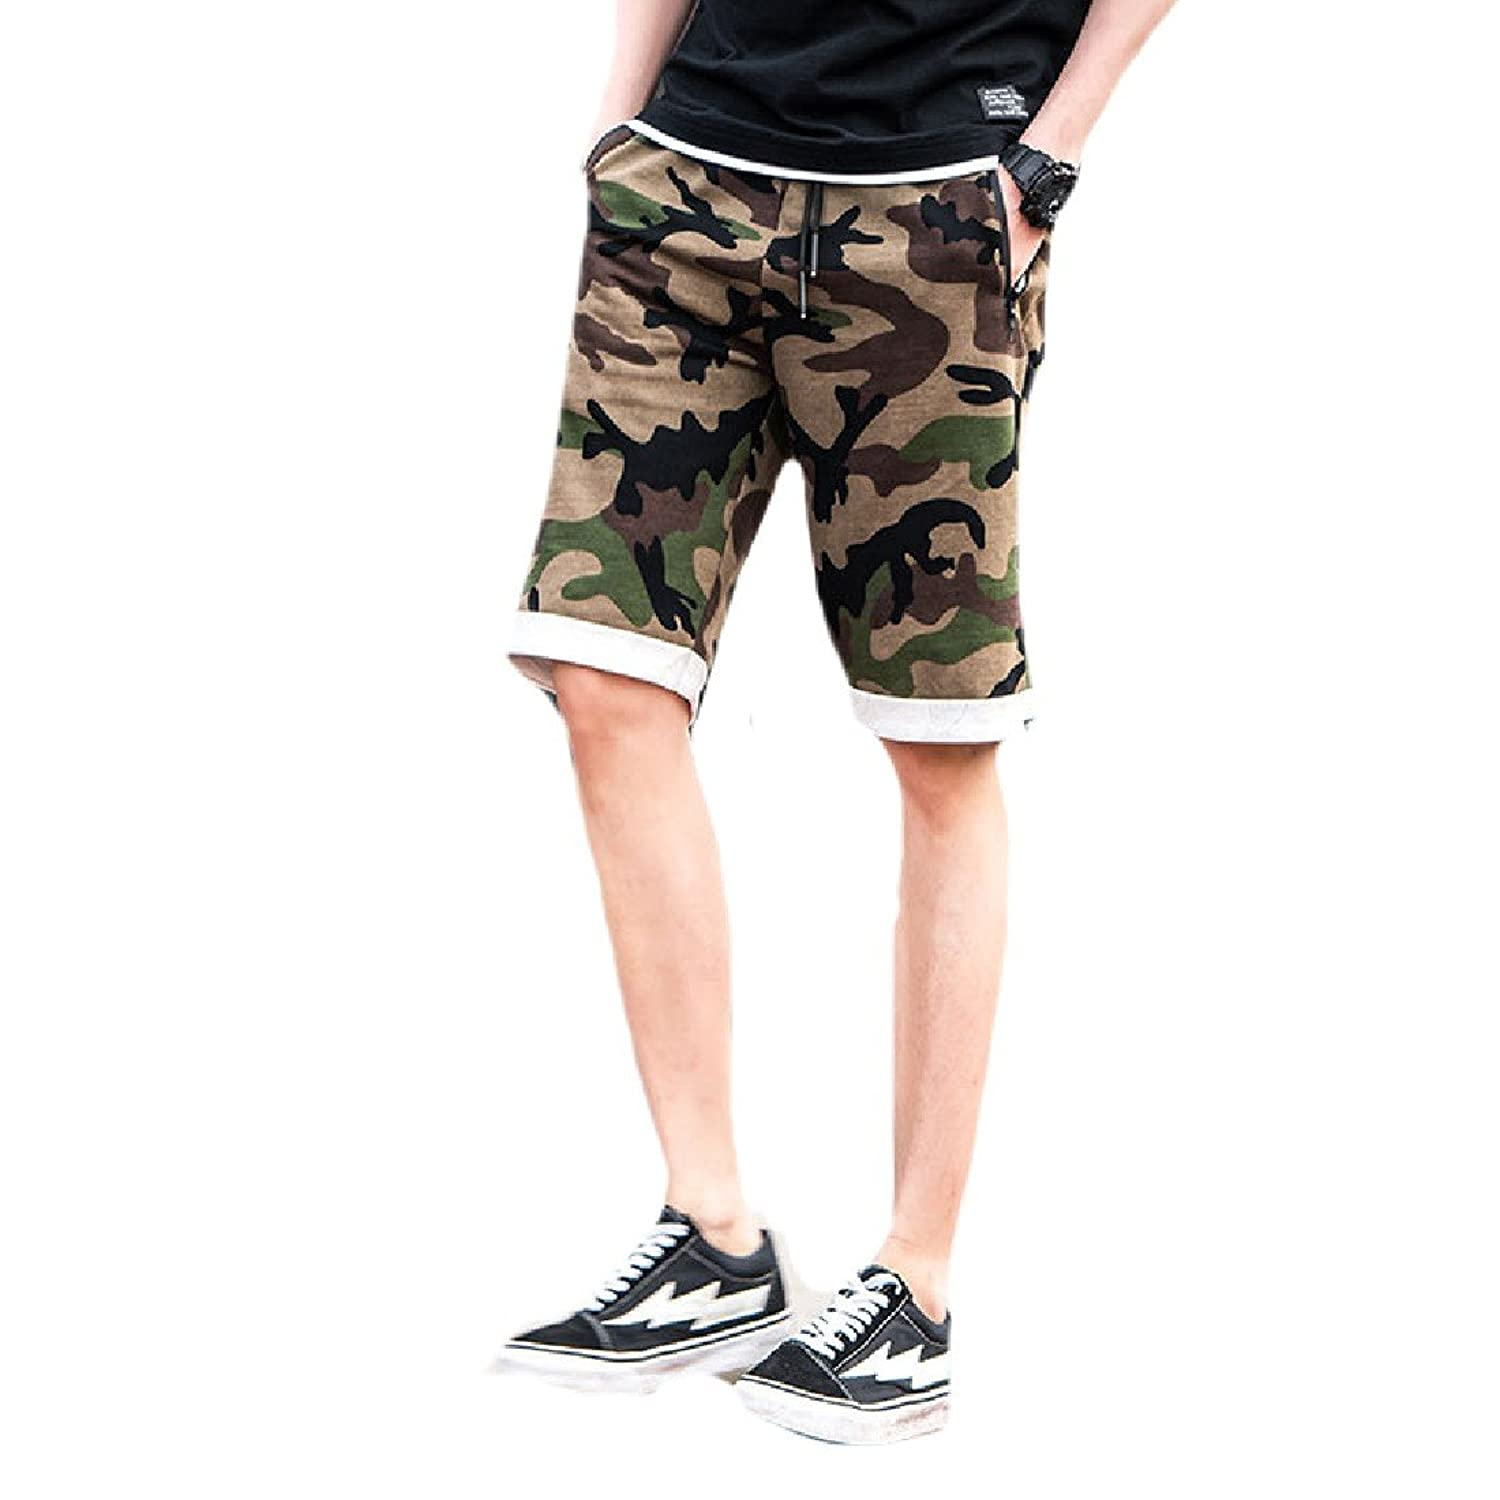 282434a637 Zimaes-Men Summer Loose Camouflage Athletic Running Sports Casual Leisure Sport  Pants Summer Shorts Pants